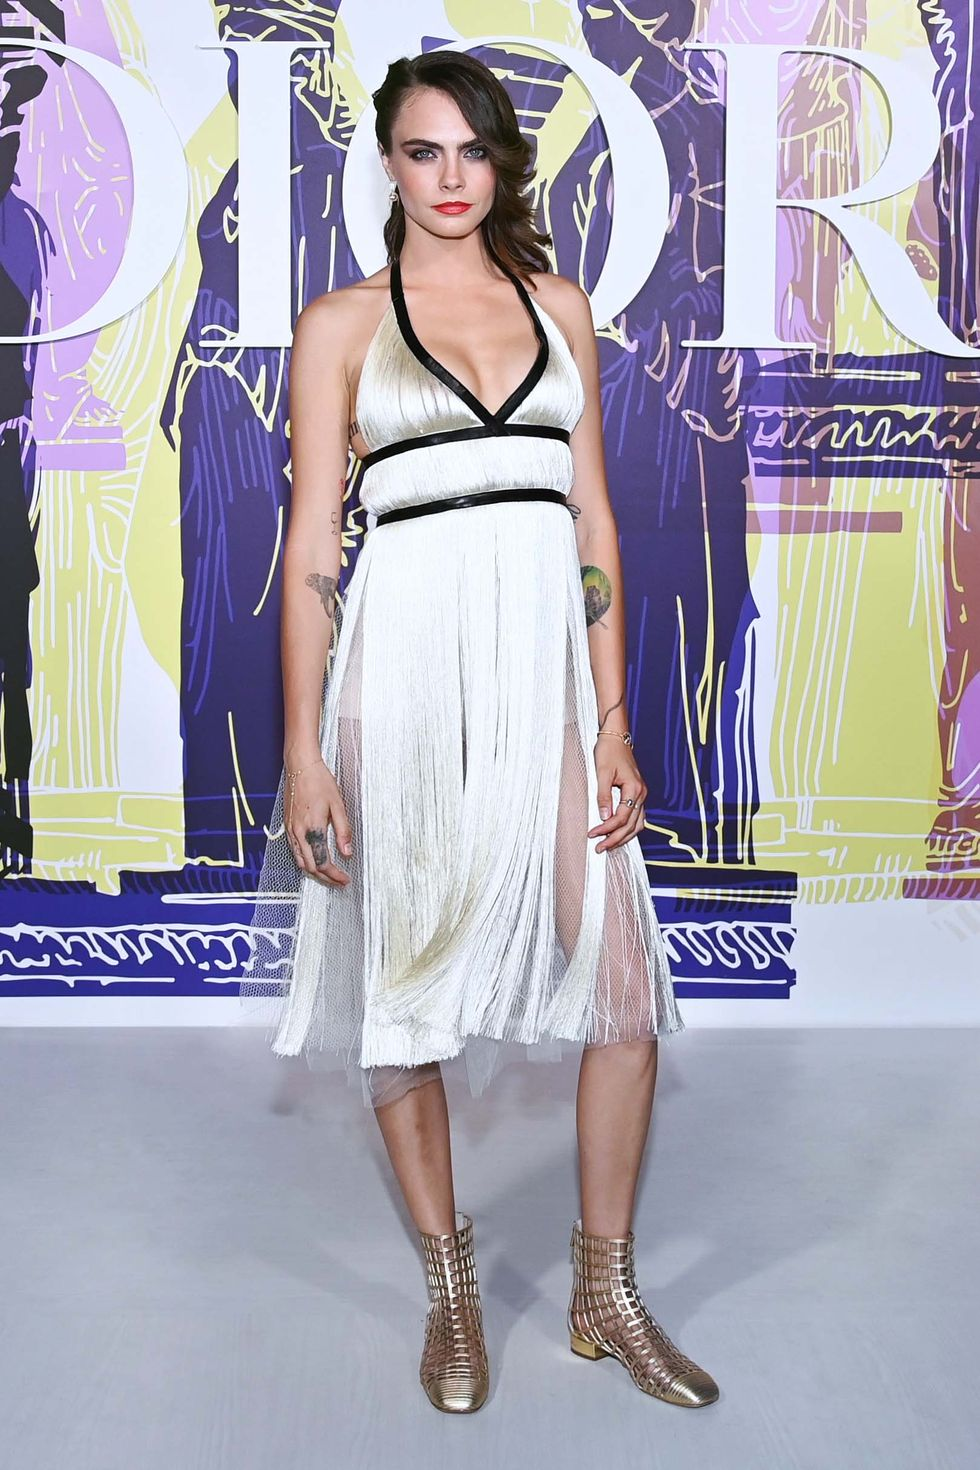 cara-delevingne-wore-dior-dress-dior-cruise-show-at-the-in-athens